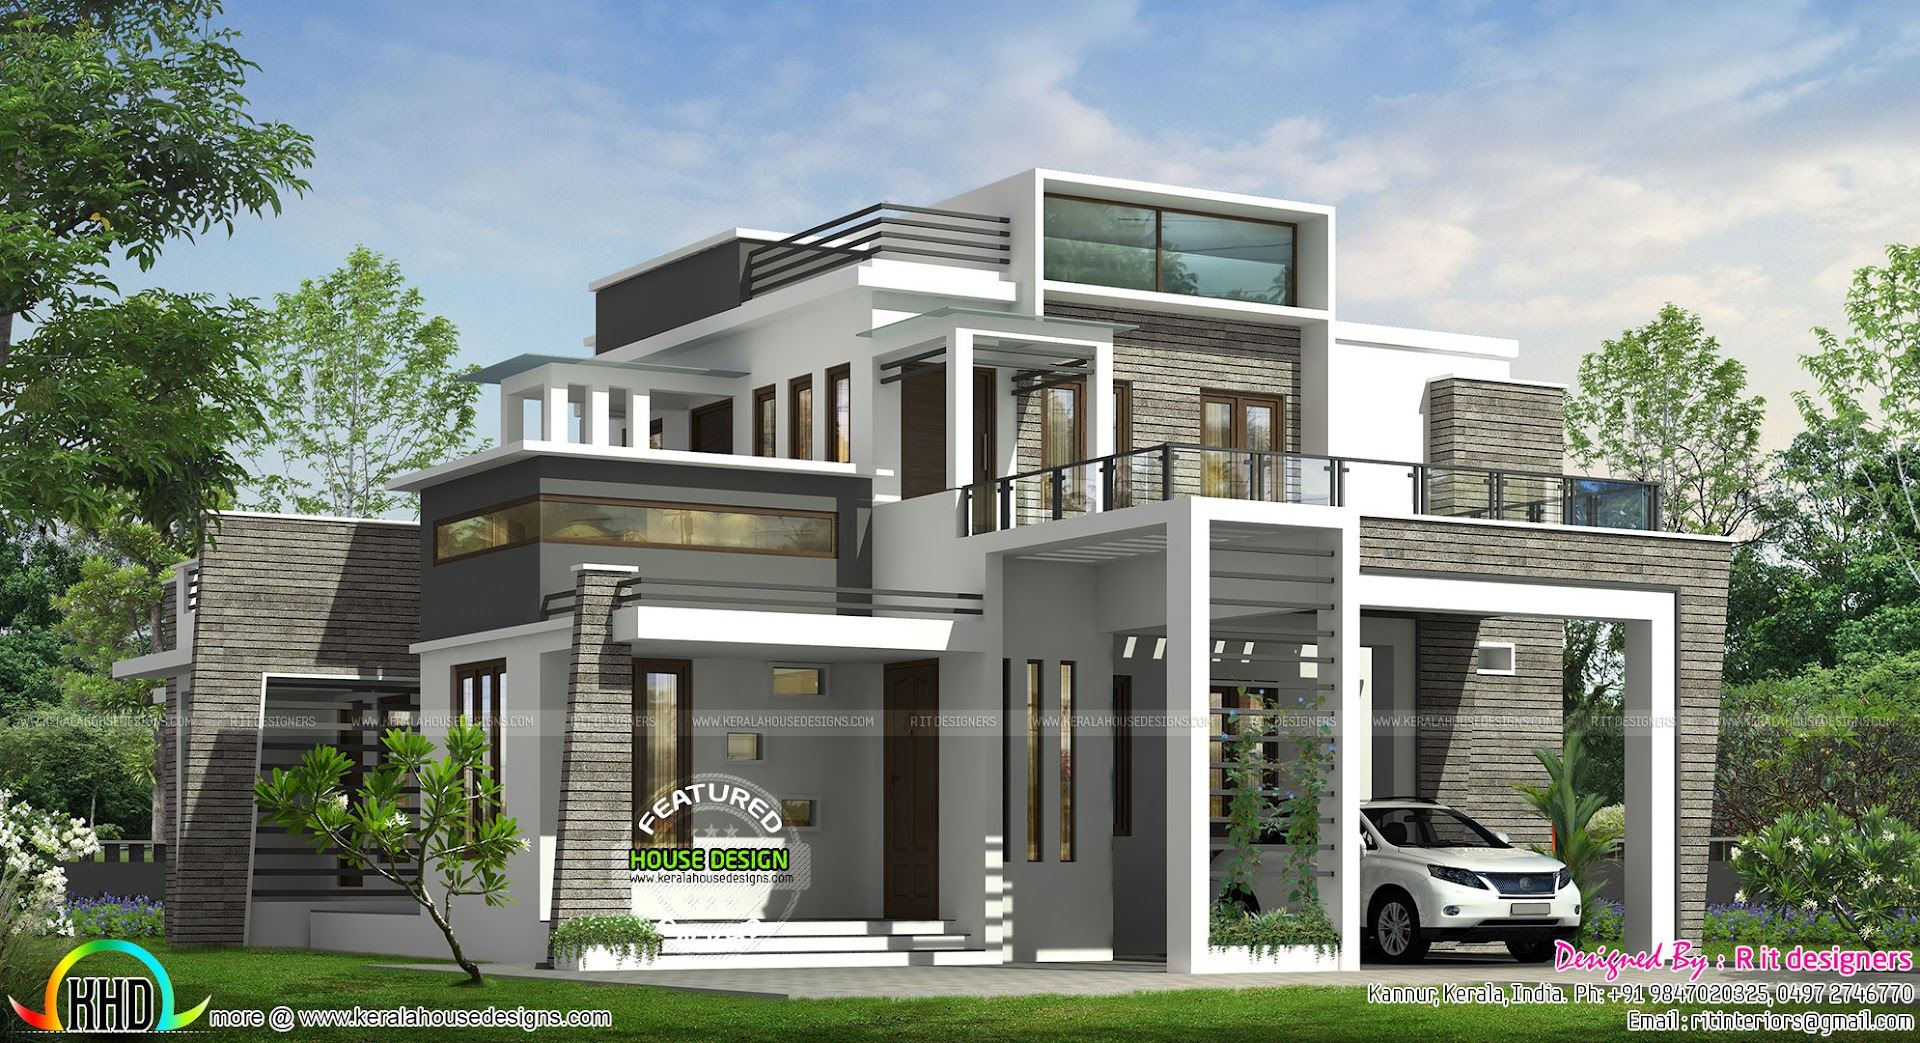 4 BHK modern box type house - Kerala home design and floor ...